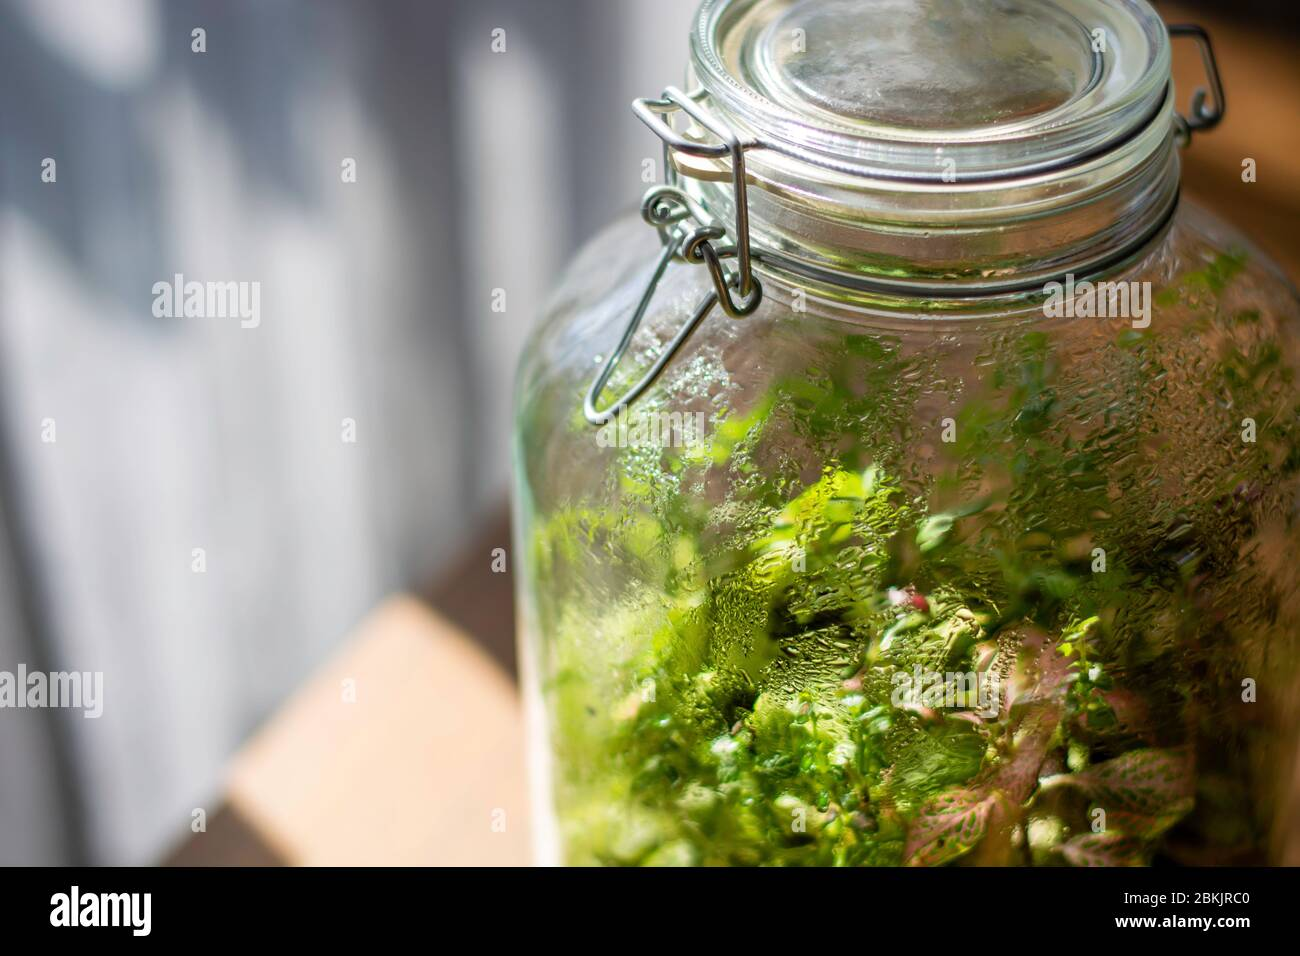 Plants In A Closed Glass Bottle Terrarium Jar Small Ecosystem Moisture Condenses On The Inside Of The Glass The Process Of Photosynthesis Drops Stock Photo Alamy